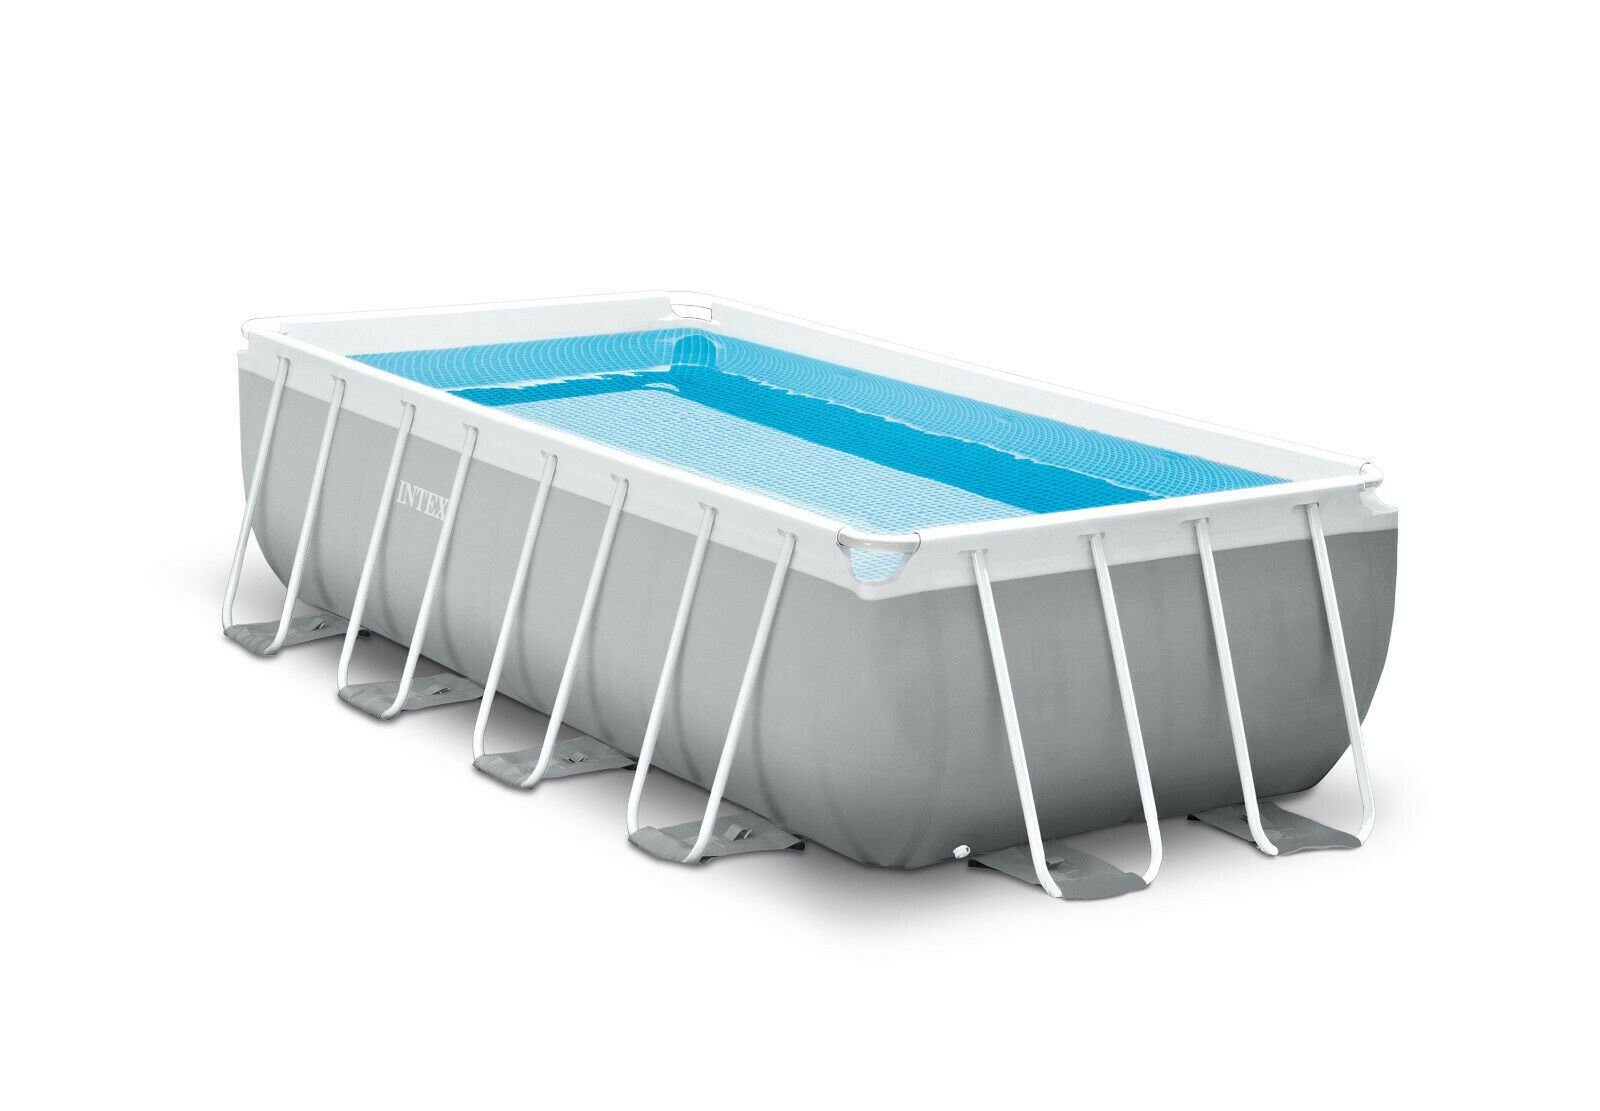 Frame Pool Rund Oder Eckig Bestway Family Splash Frame Pool 400x211x81cm 56405